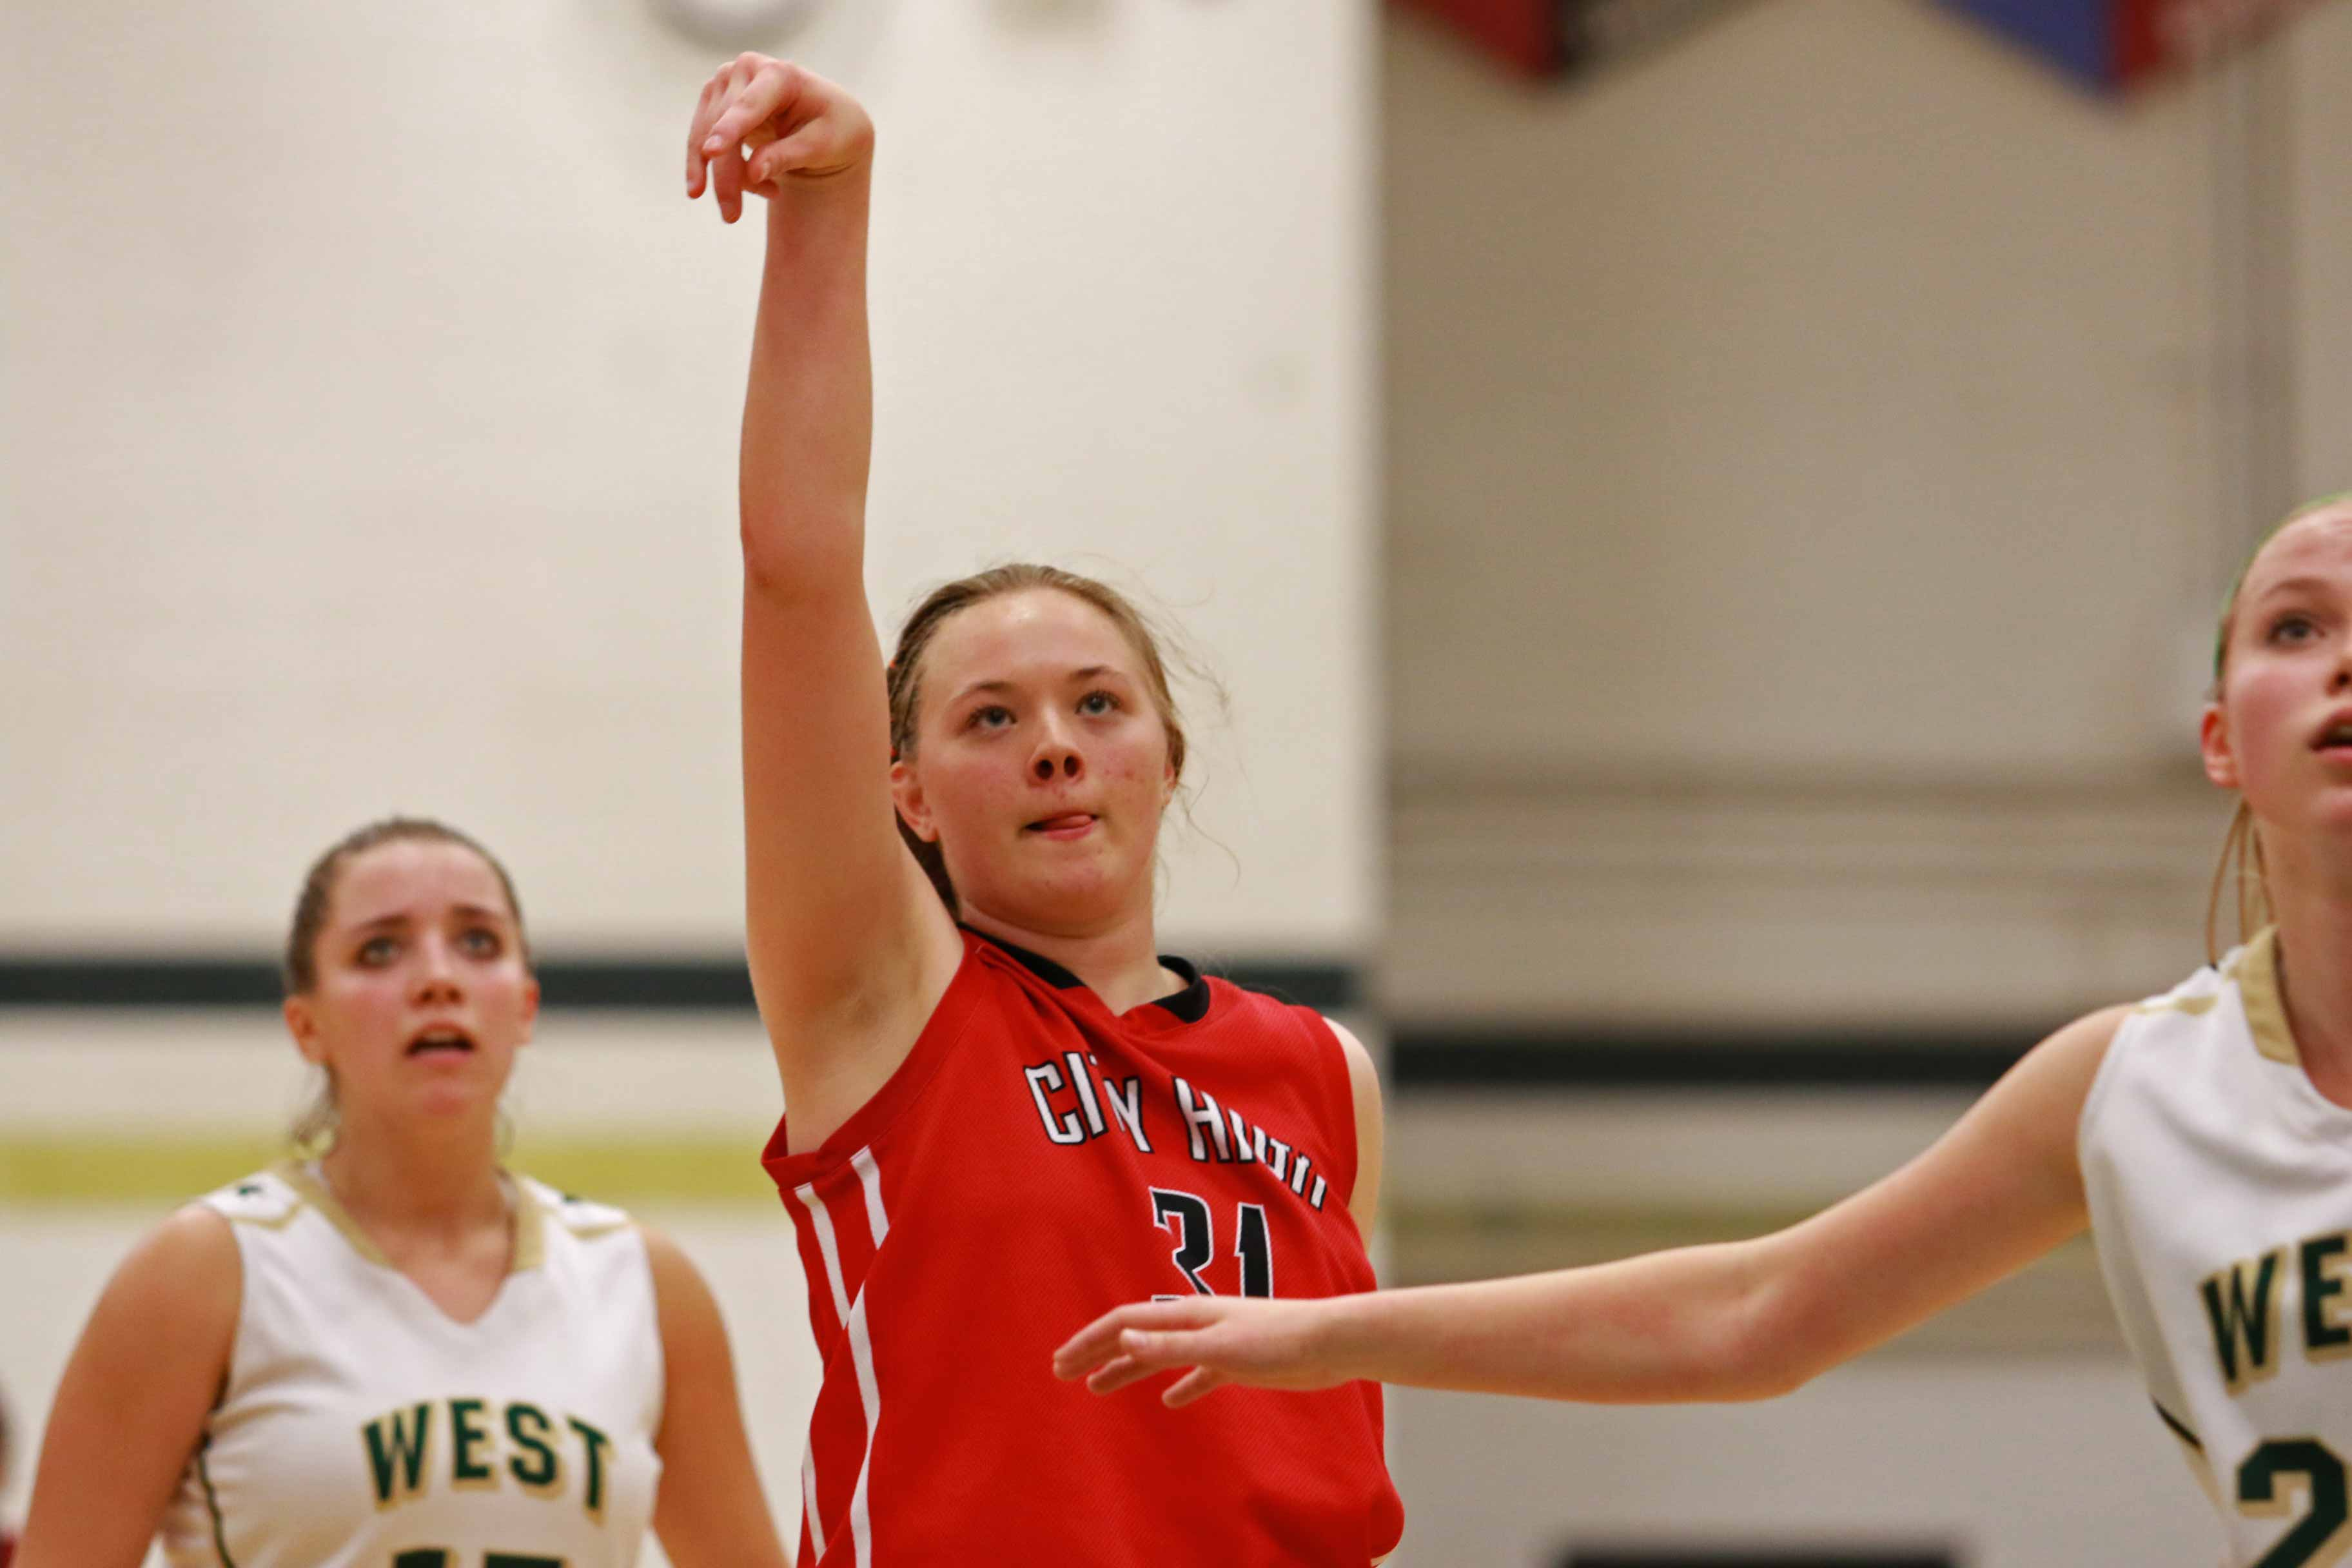 Courtney Joens '16 shoots a free throw against West.